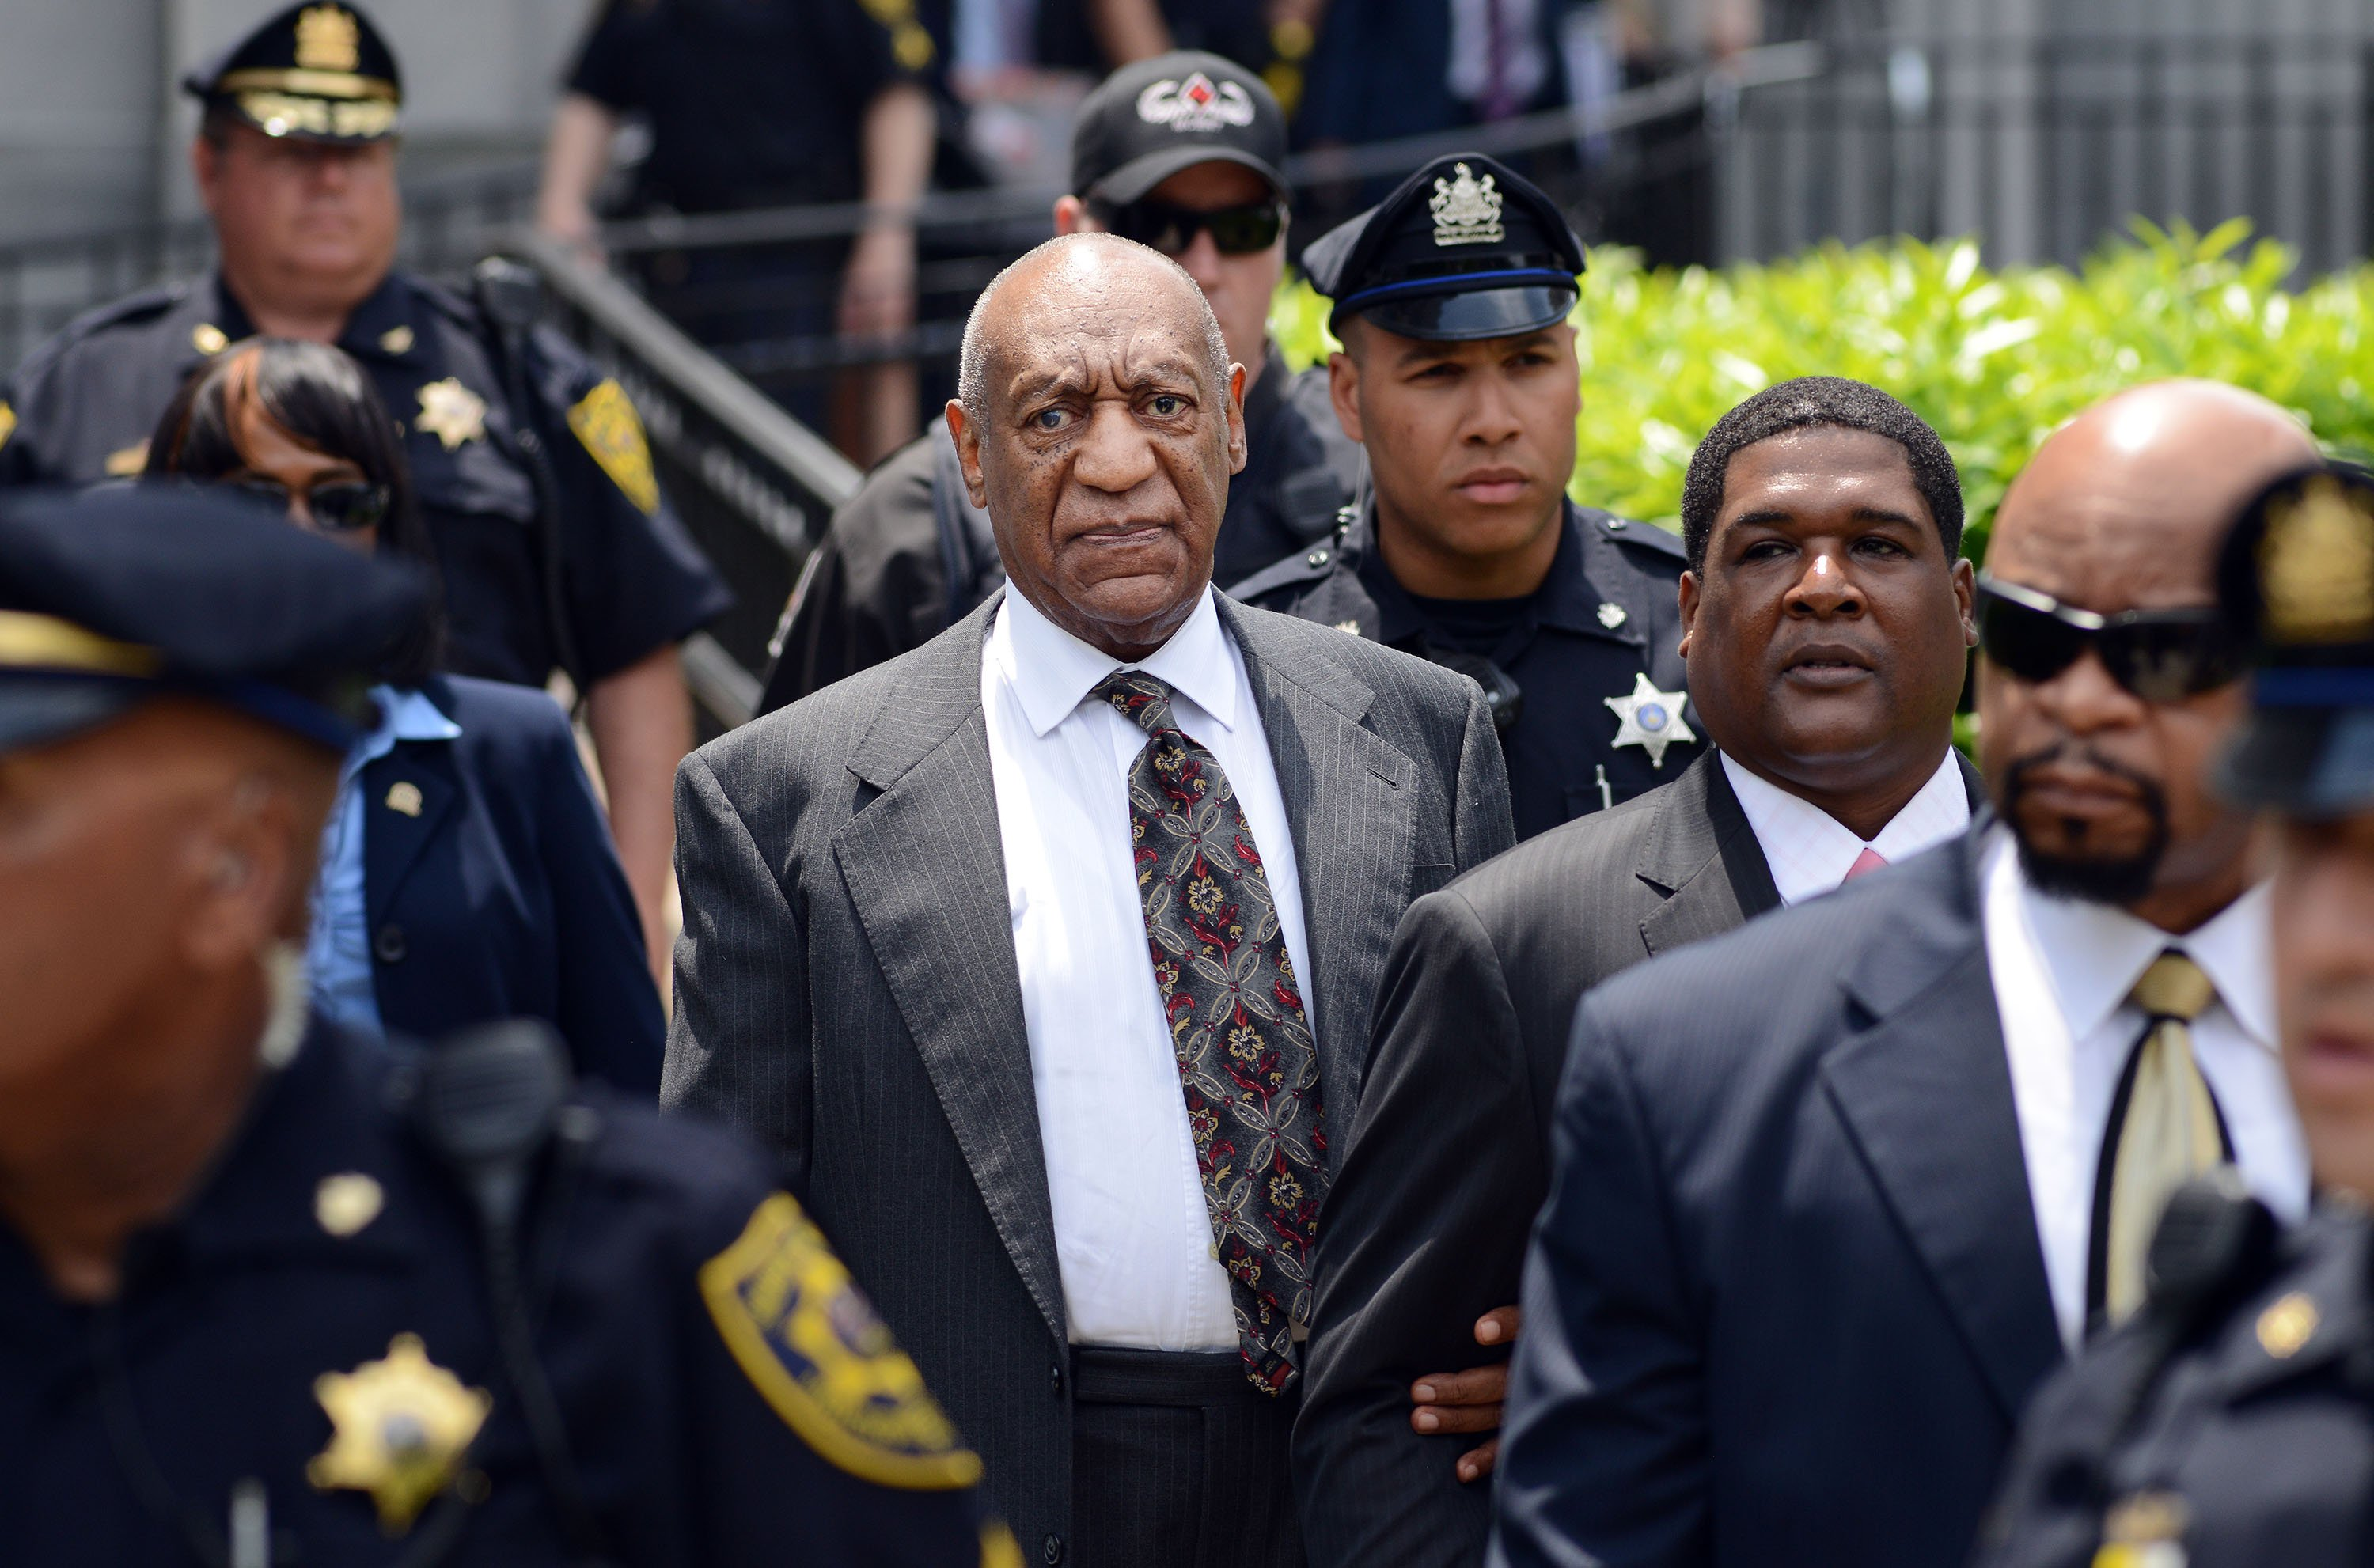 Actor and comedian Bill Cosby leaves a preliminary hearing on sexual assault charges on May 24, 2016 in at Montgomery County Courthouse in Norristown, Pennsylvania. Enough evidence was found to proceed with a trial, a Pennsylvania judge ruled. (Photo by William Thomas Cain/Getty Images)